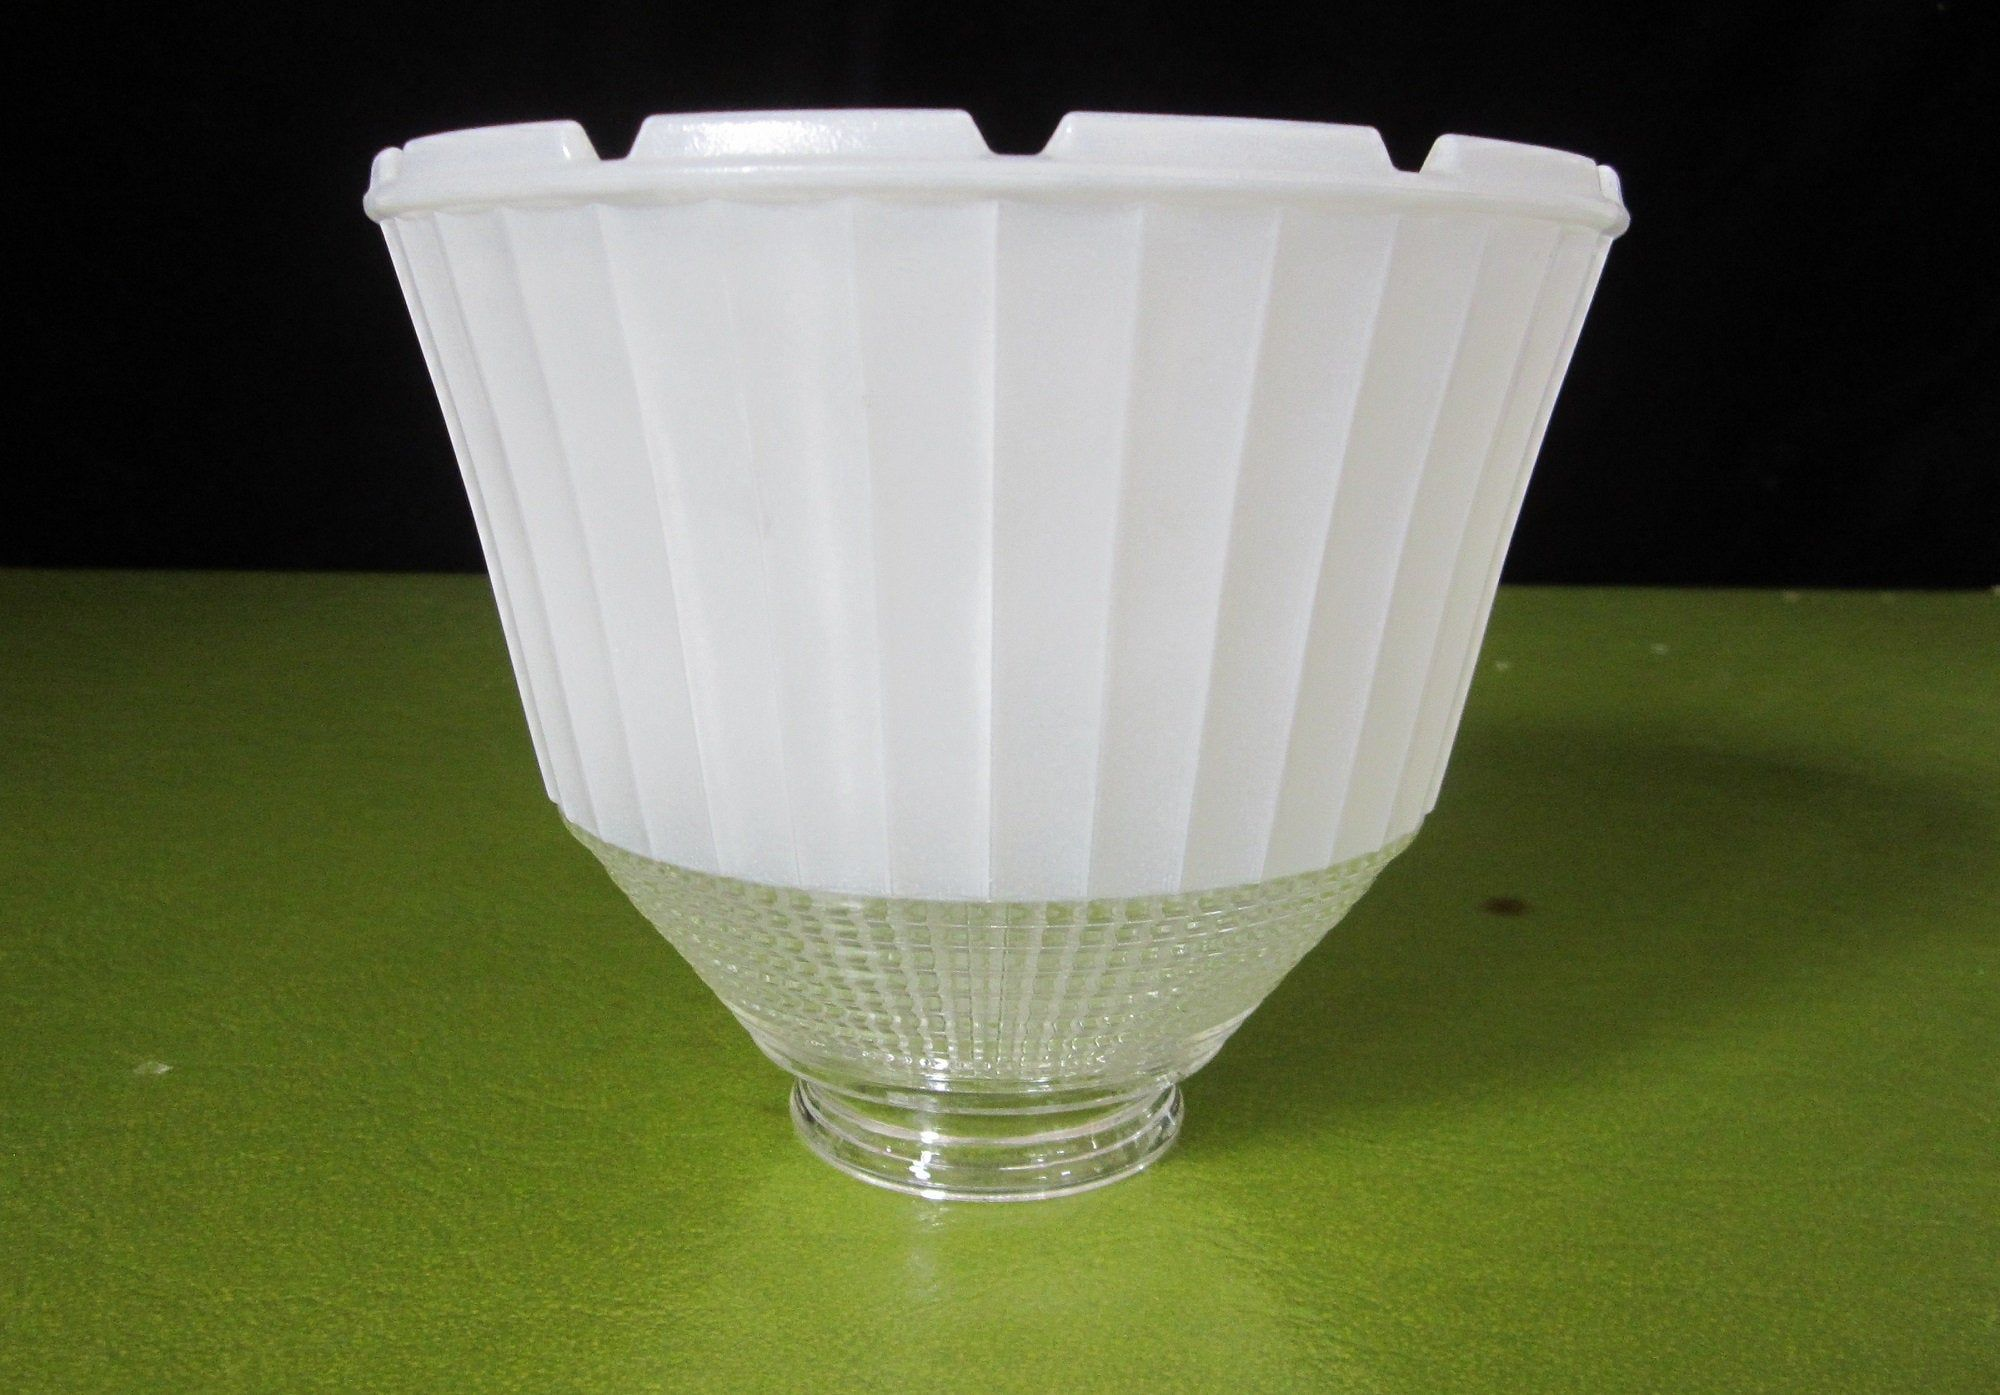 6 Torchiere Light Shade National Home Lamp Council No 955 2 25 Fitter Vintage 1957 Patent 2794115 Notched Glass Diff Glass Diffuser Light Shades Glass Bowl